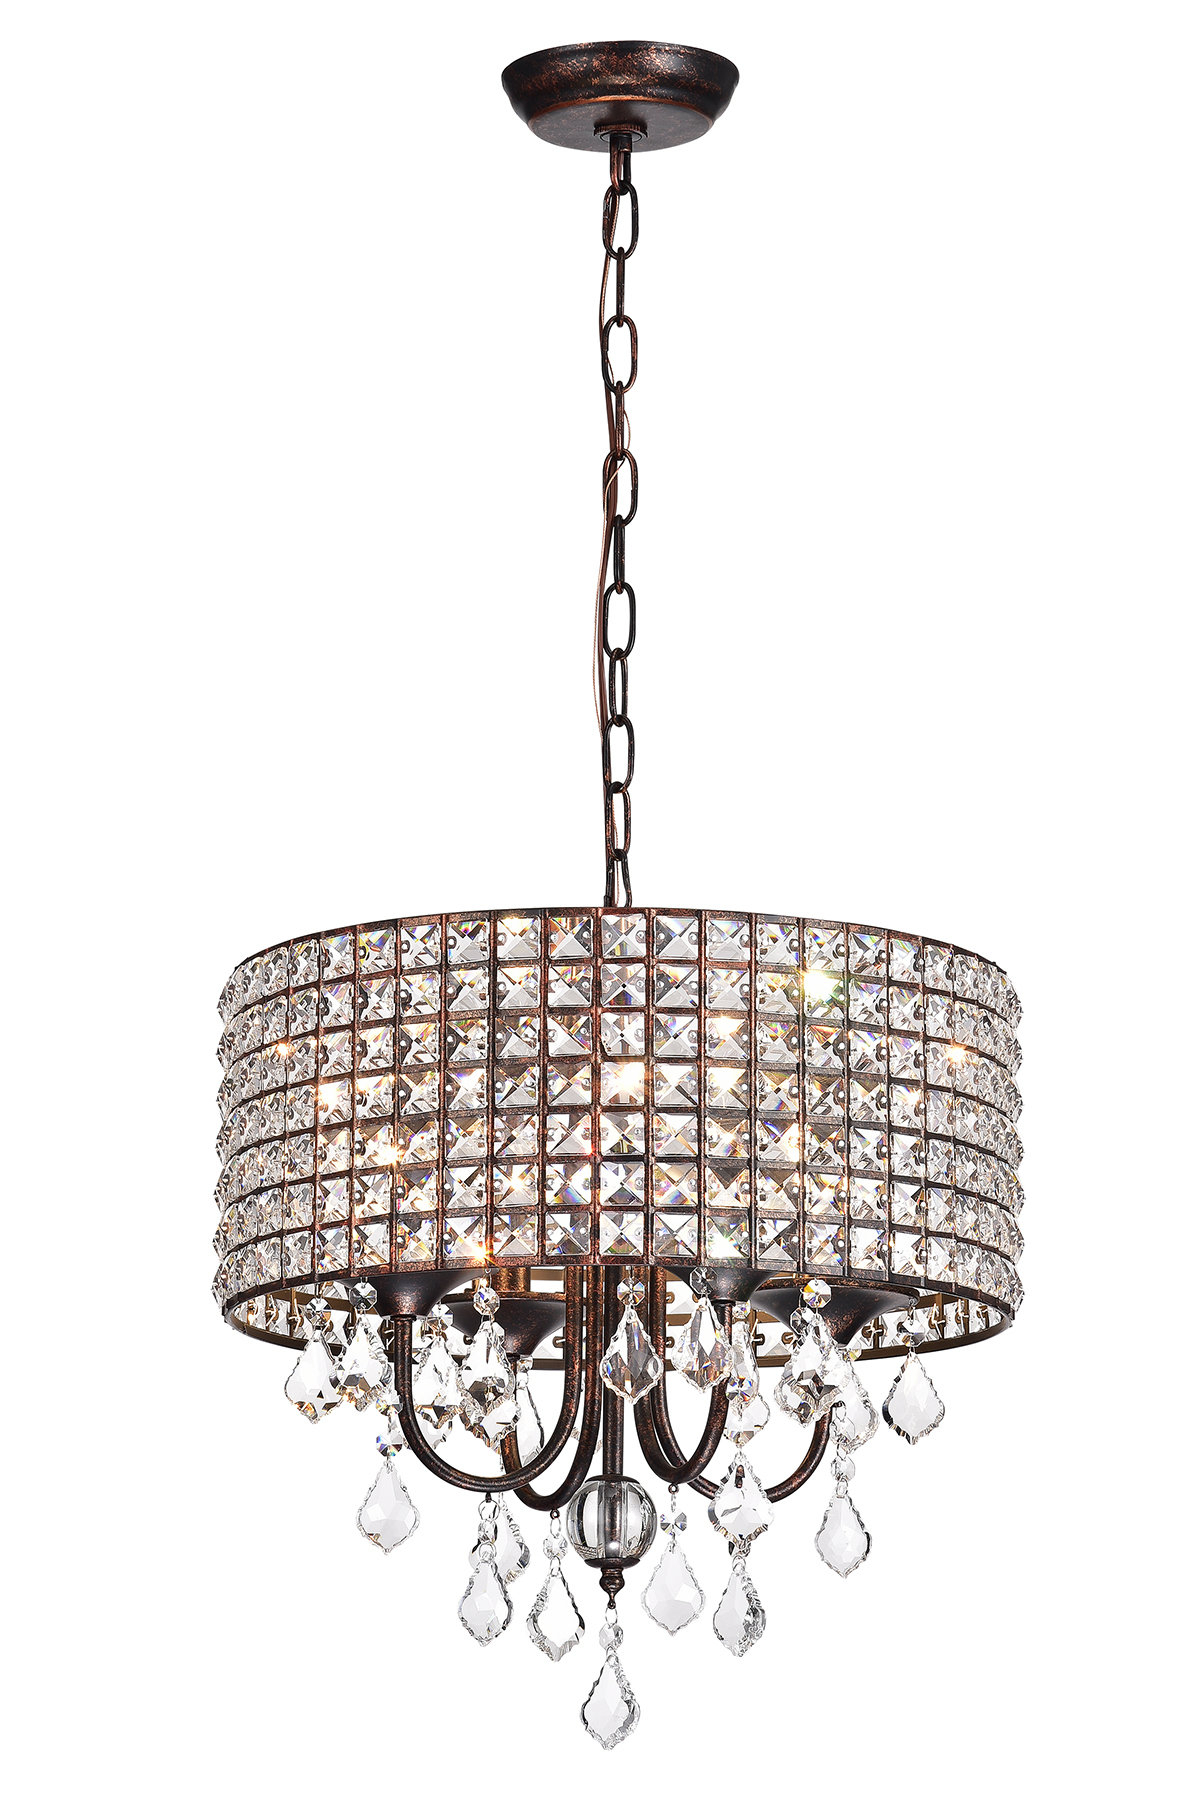 Lavada 4 Light Drum Chandelier Intended For Gisselle 4 Light Drum Chandeliers (View 4 of 30)